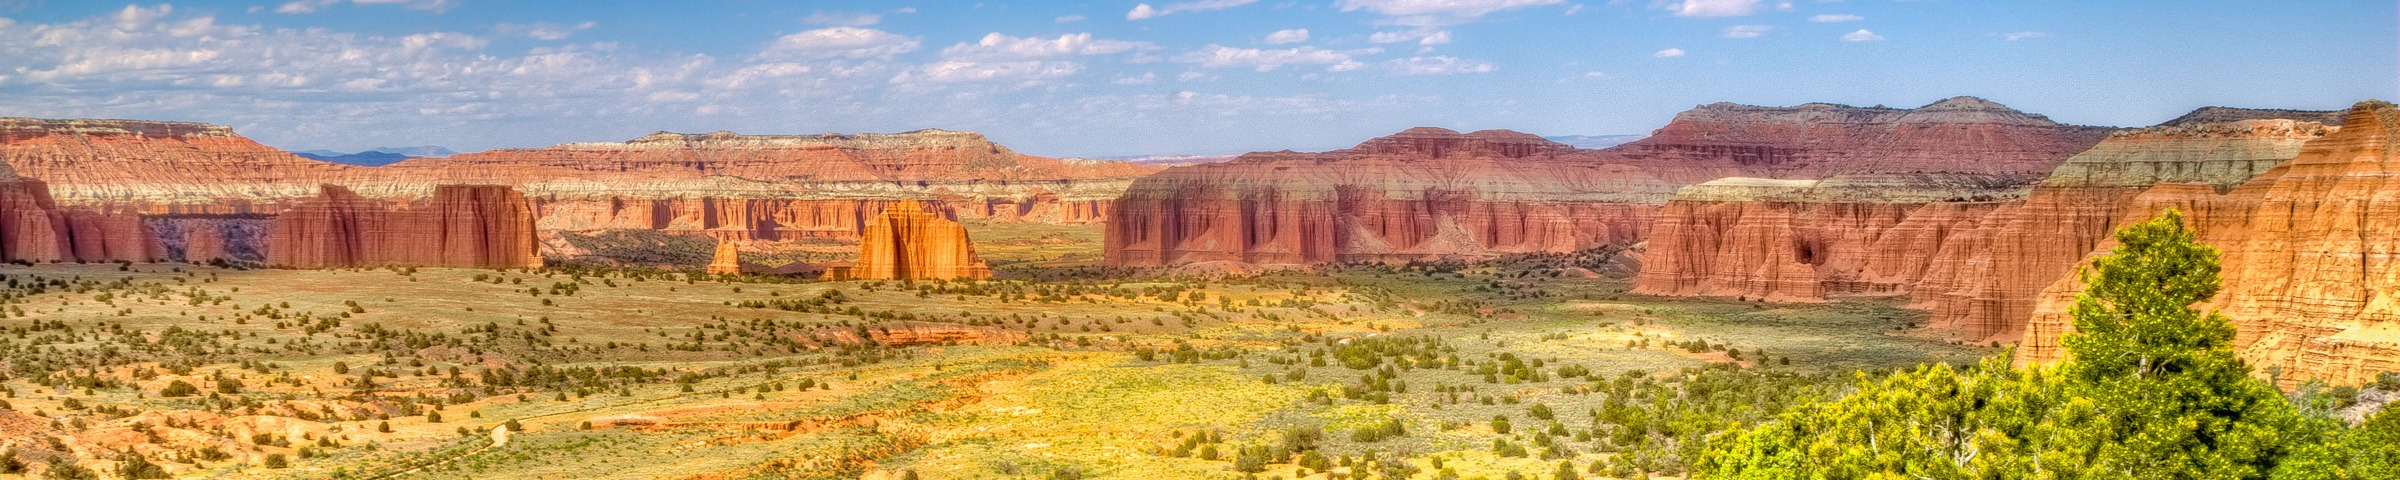 Panoramic view of Cathedral Valley in Capitol Reef National Park, Utah, with the Temples of the Sun and Moon in the distance.